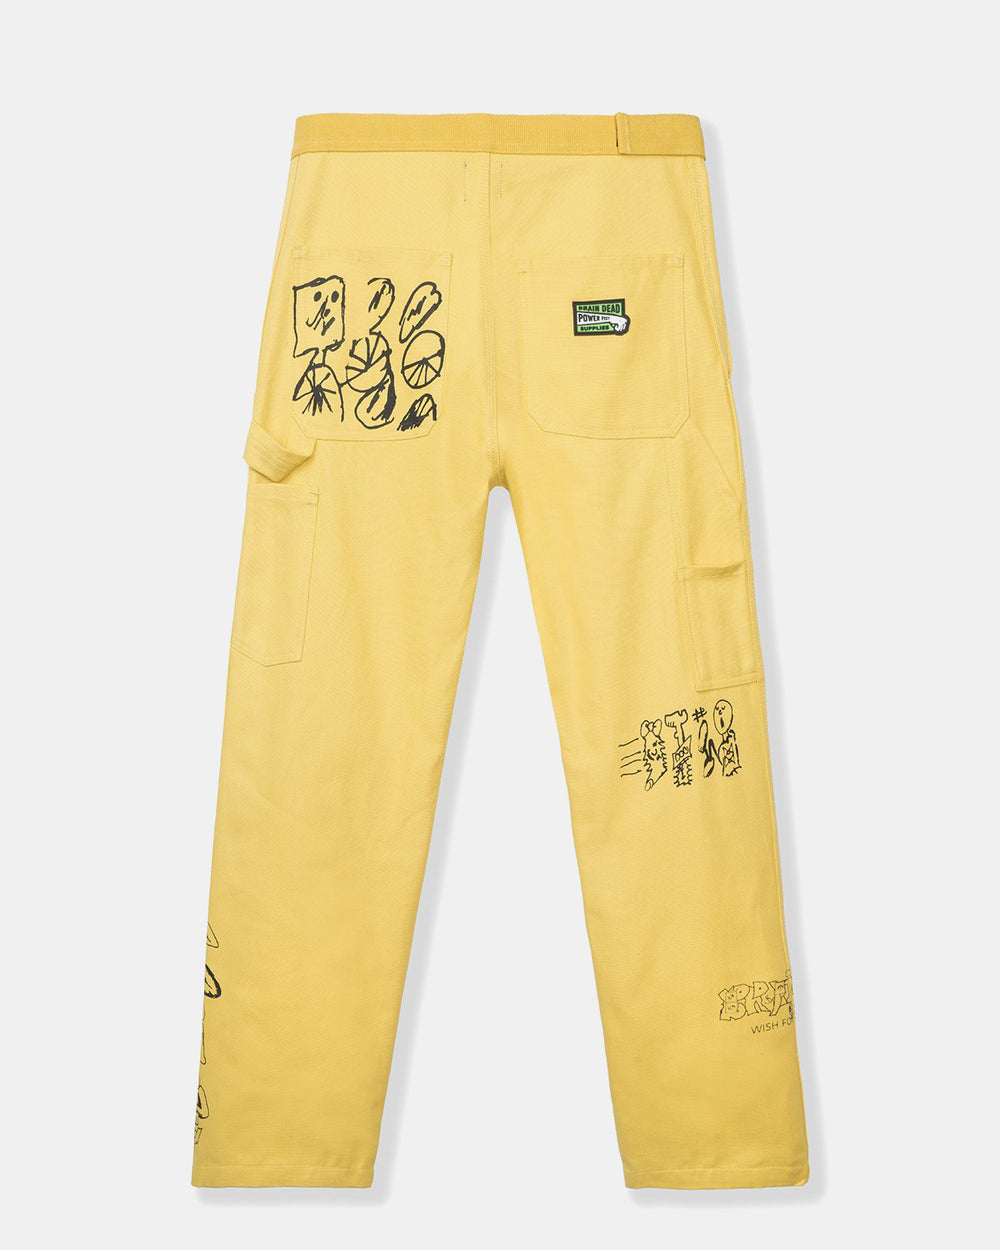 Brain Dead - Hard/Software Velcro Printed Carpenter Pant (Yellow)